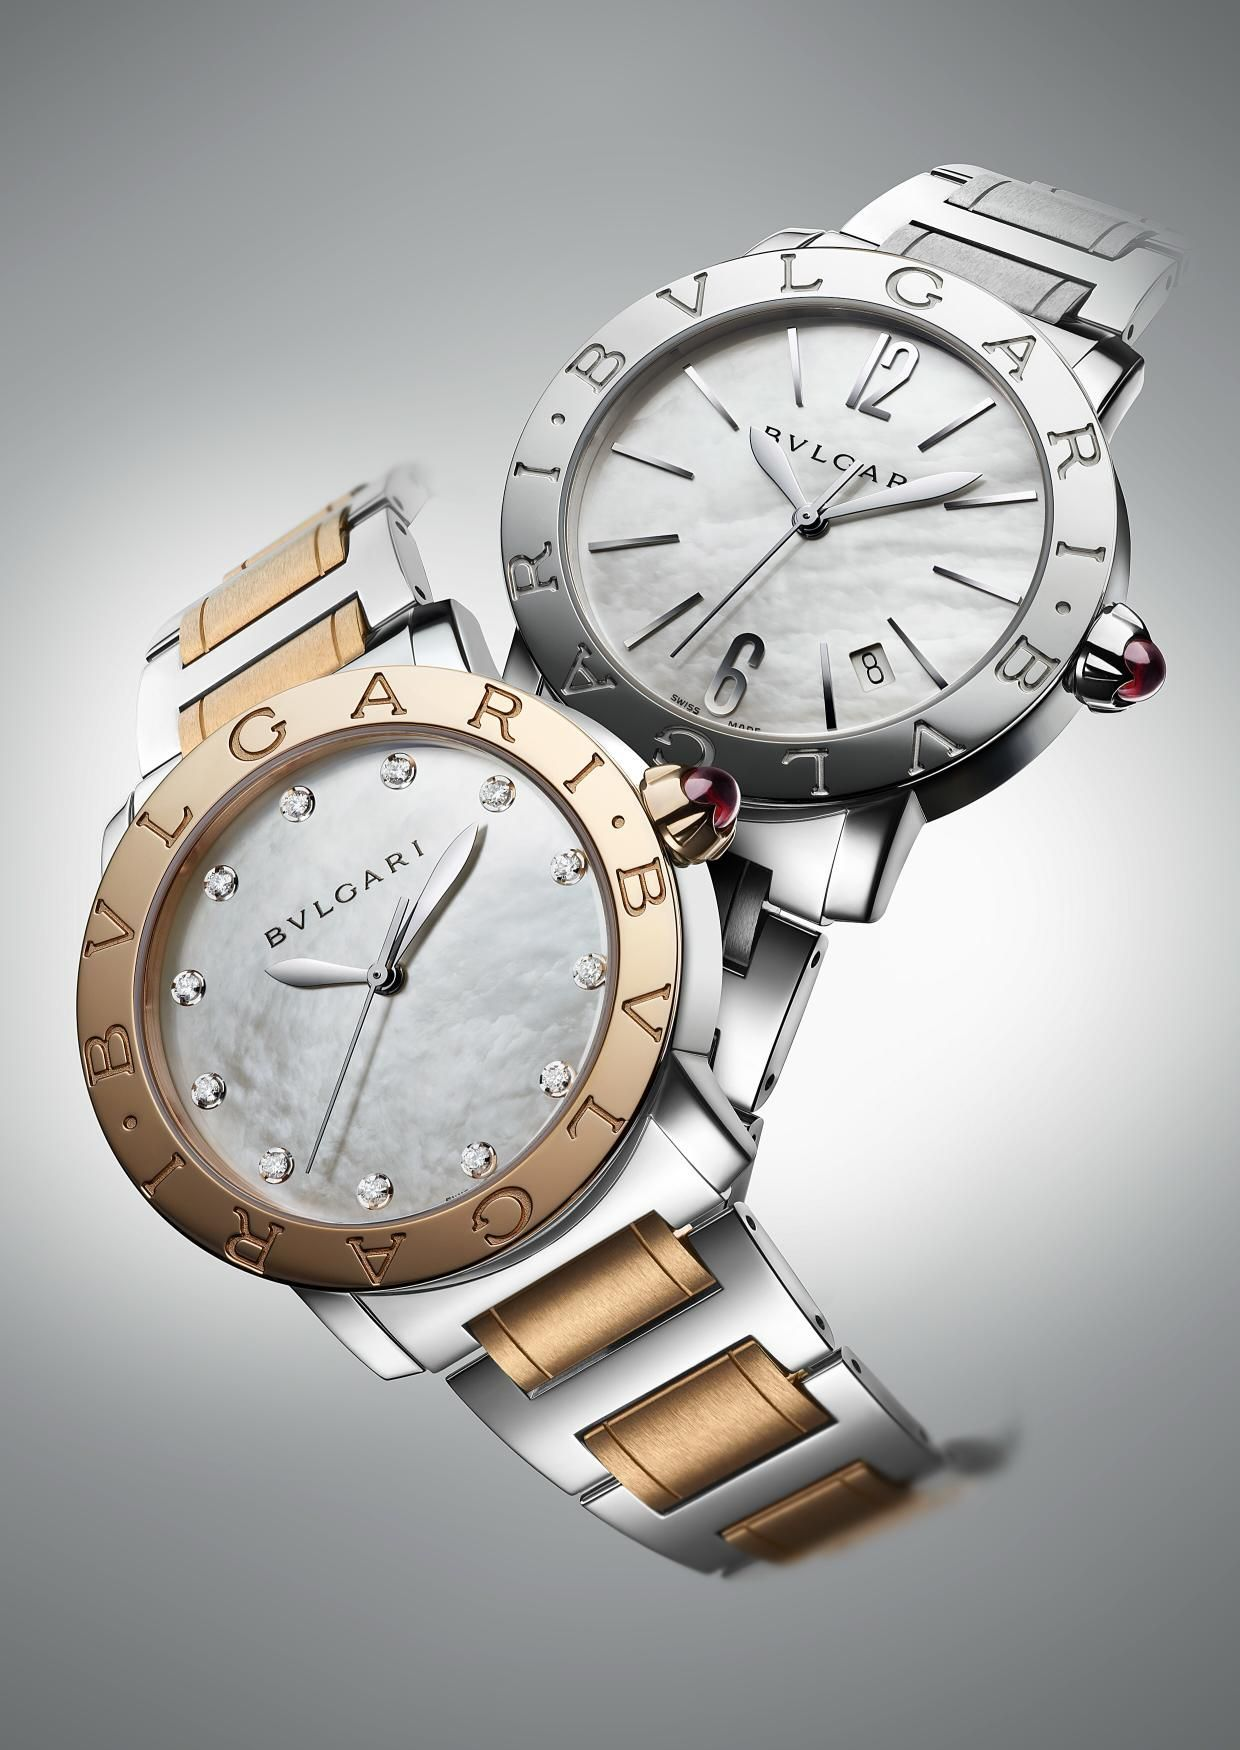 Bvlgari bvlgari watch brands pinterest citizen watches